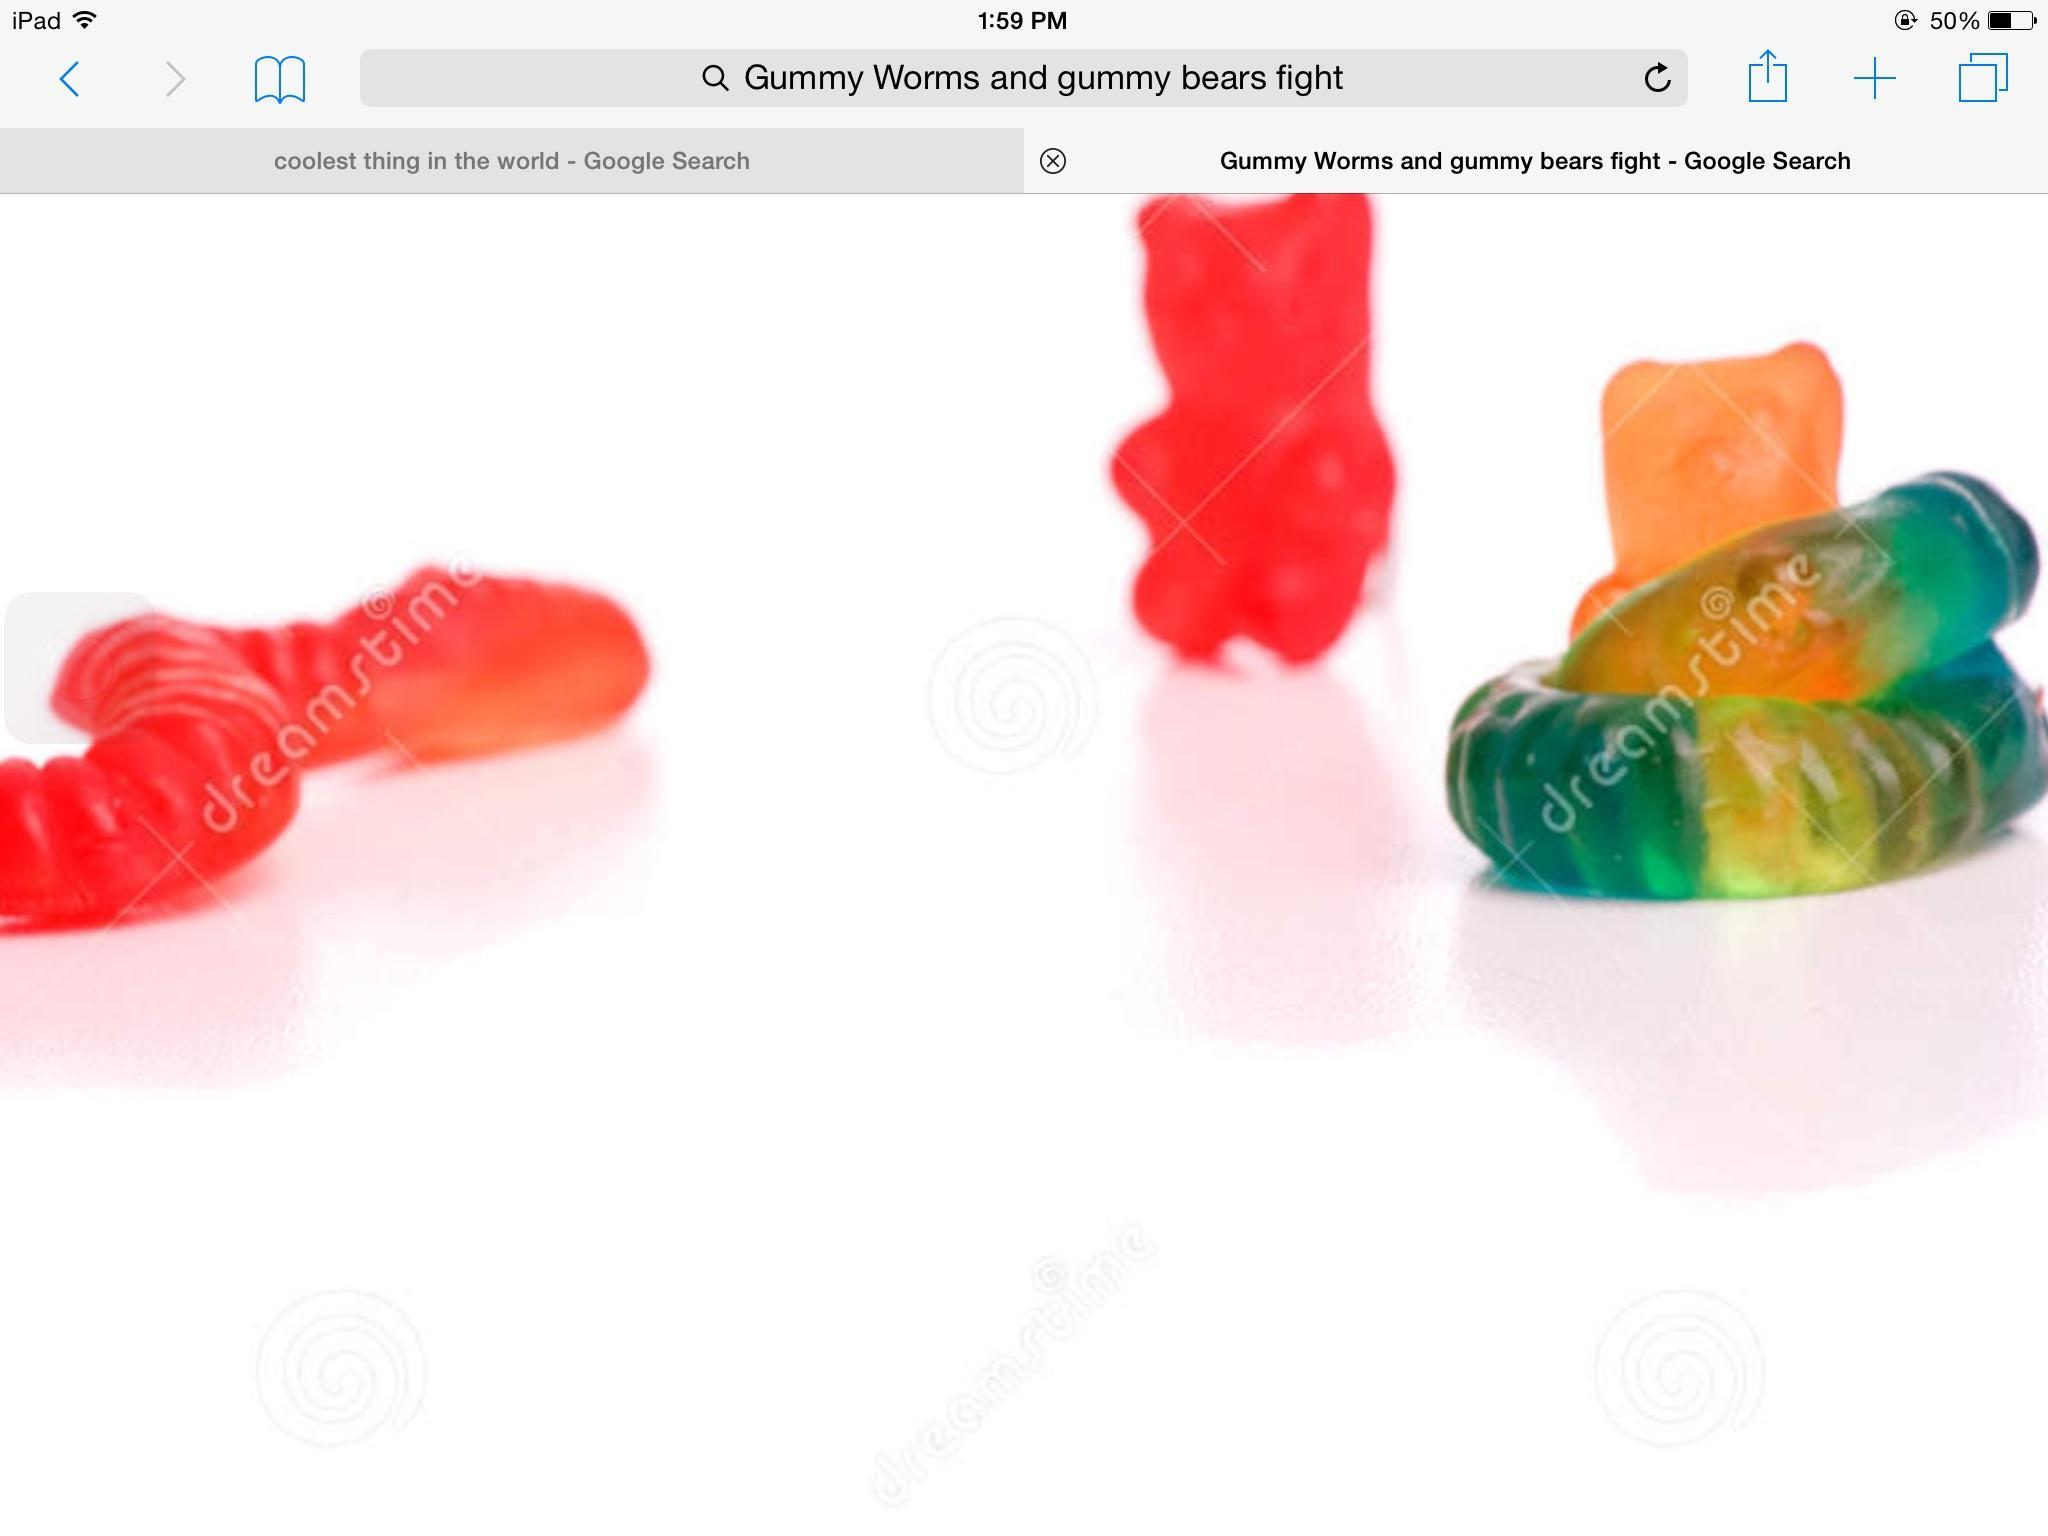 Gummy worms or gummy bears?